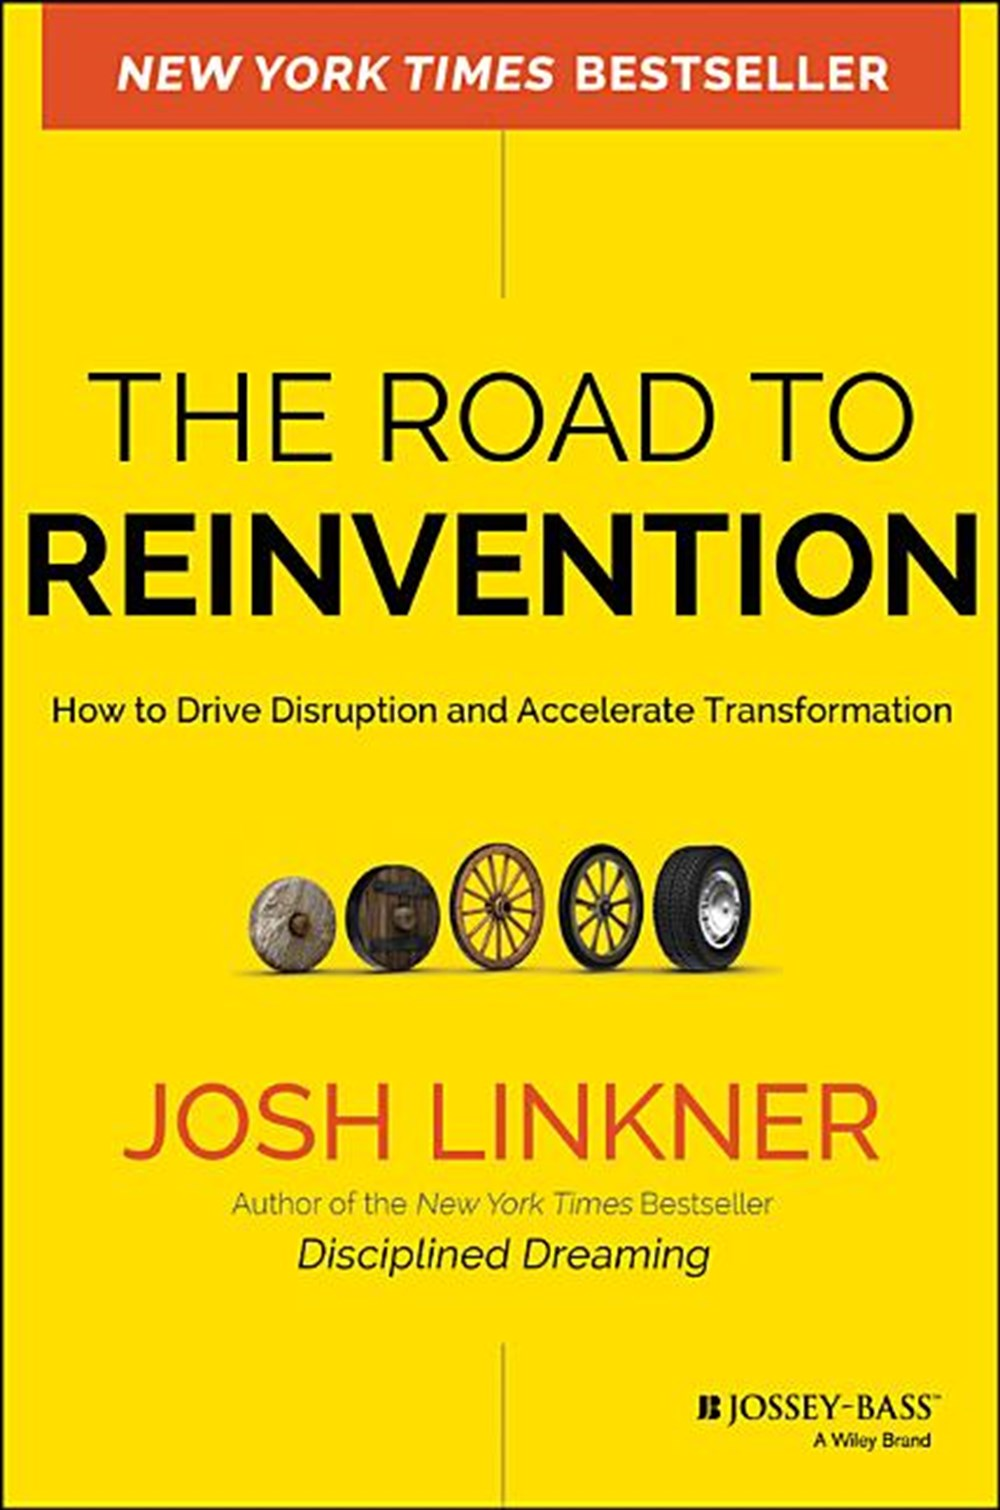 Road to Reinvention How to Drive Disruption and Accelerate Transformation